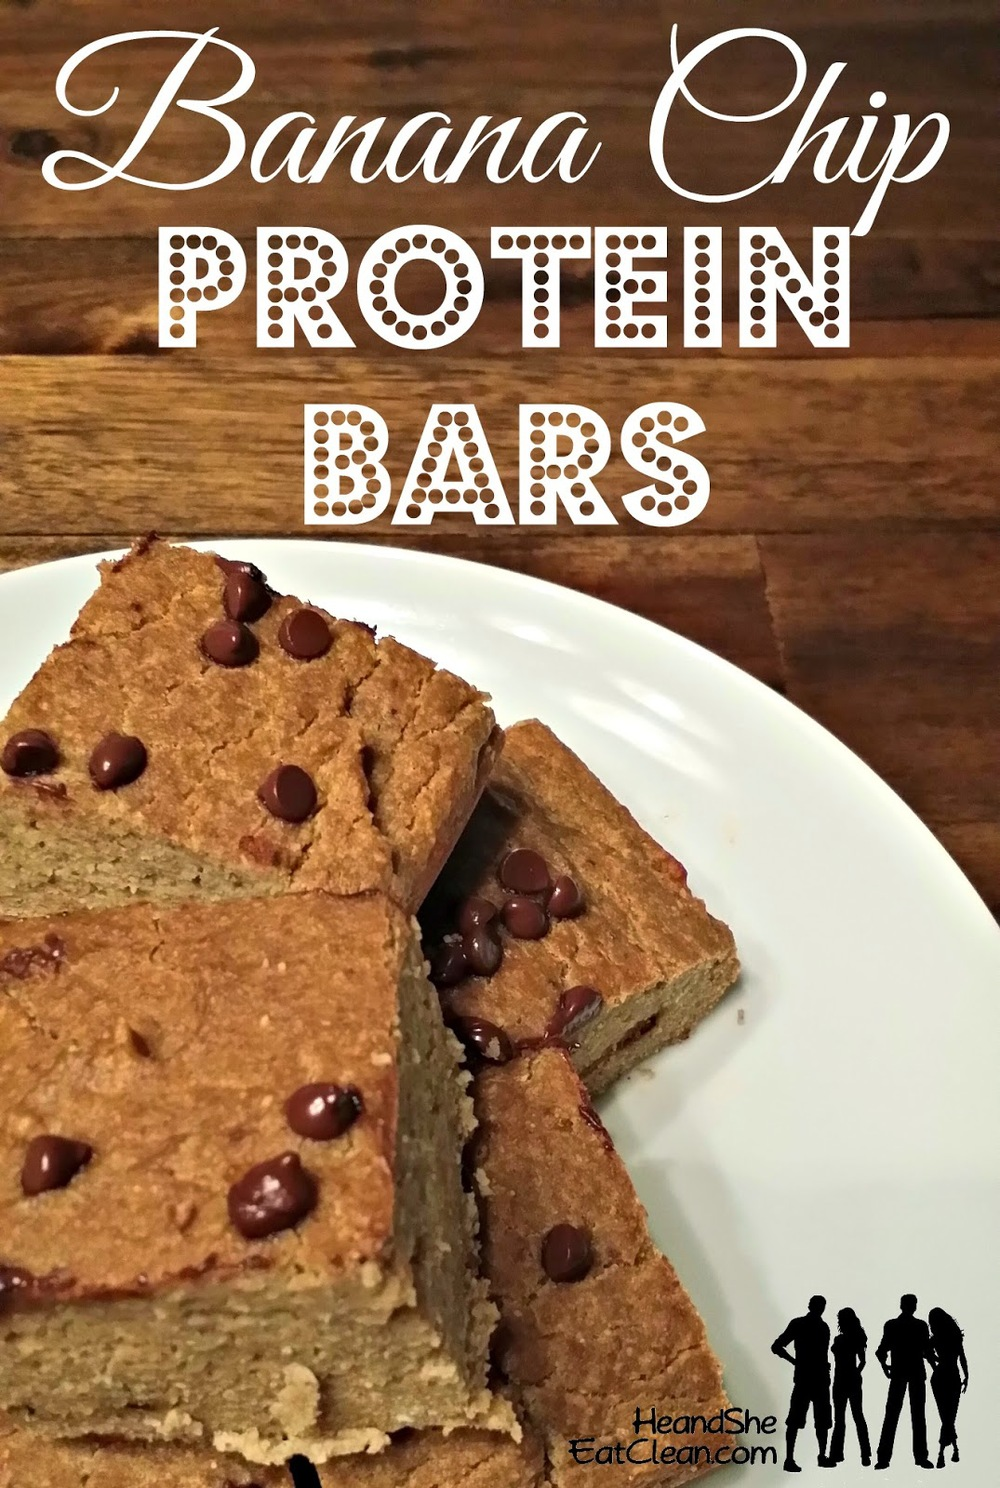 Banana Chip Protein Bars